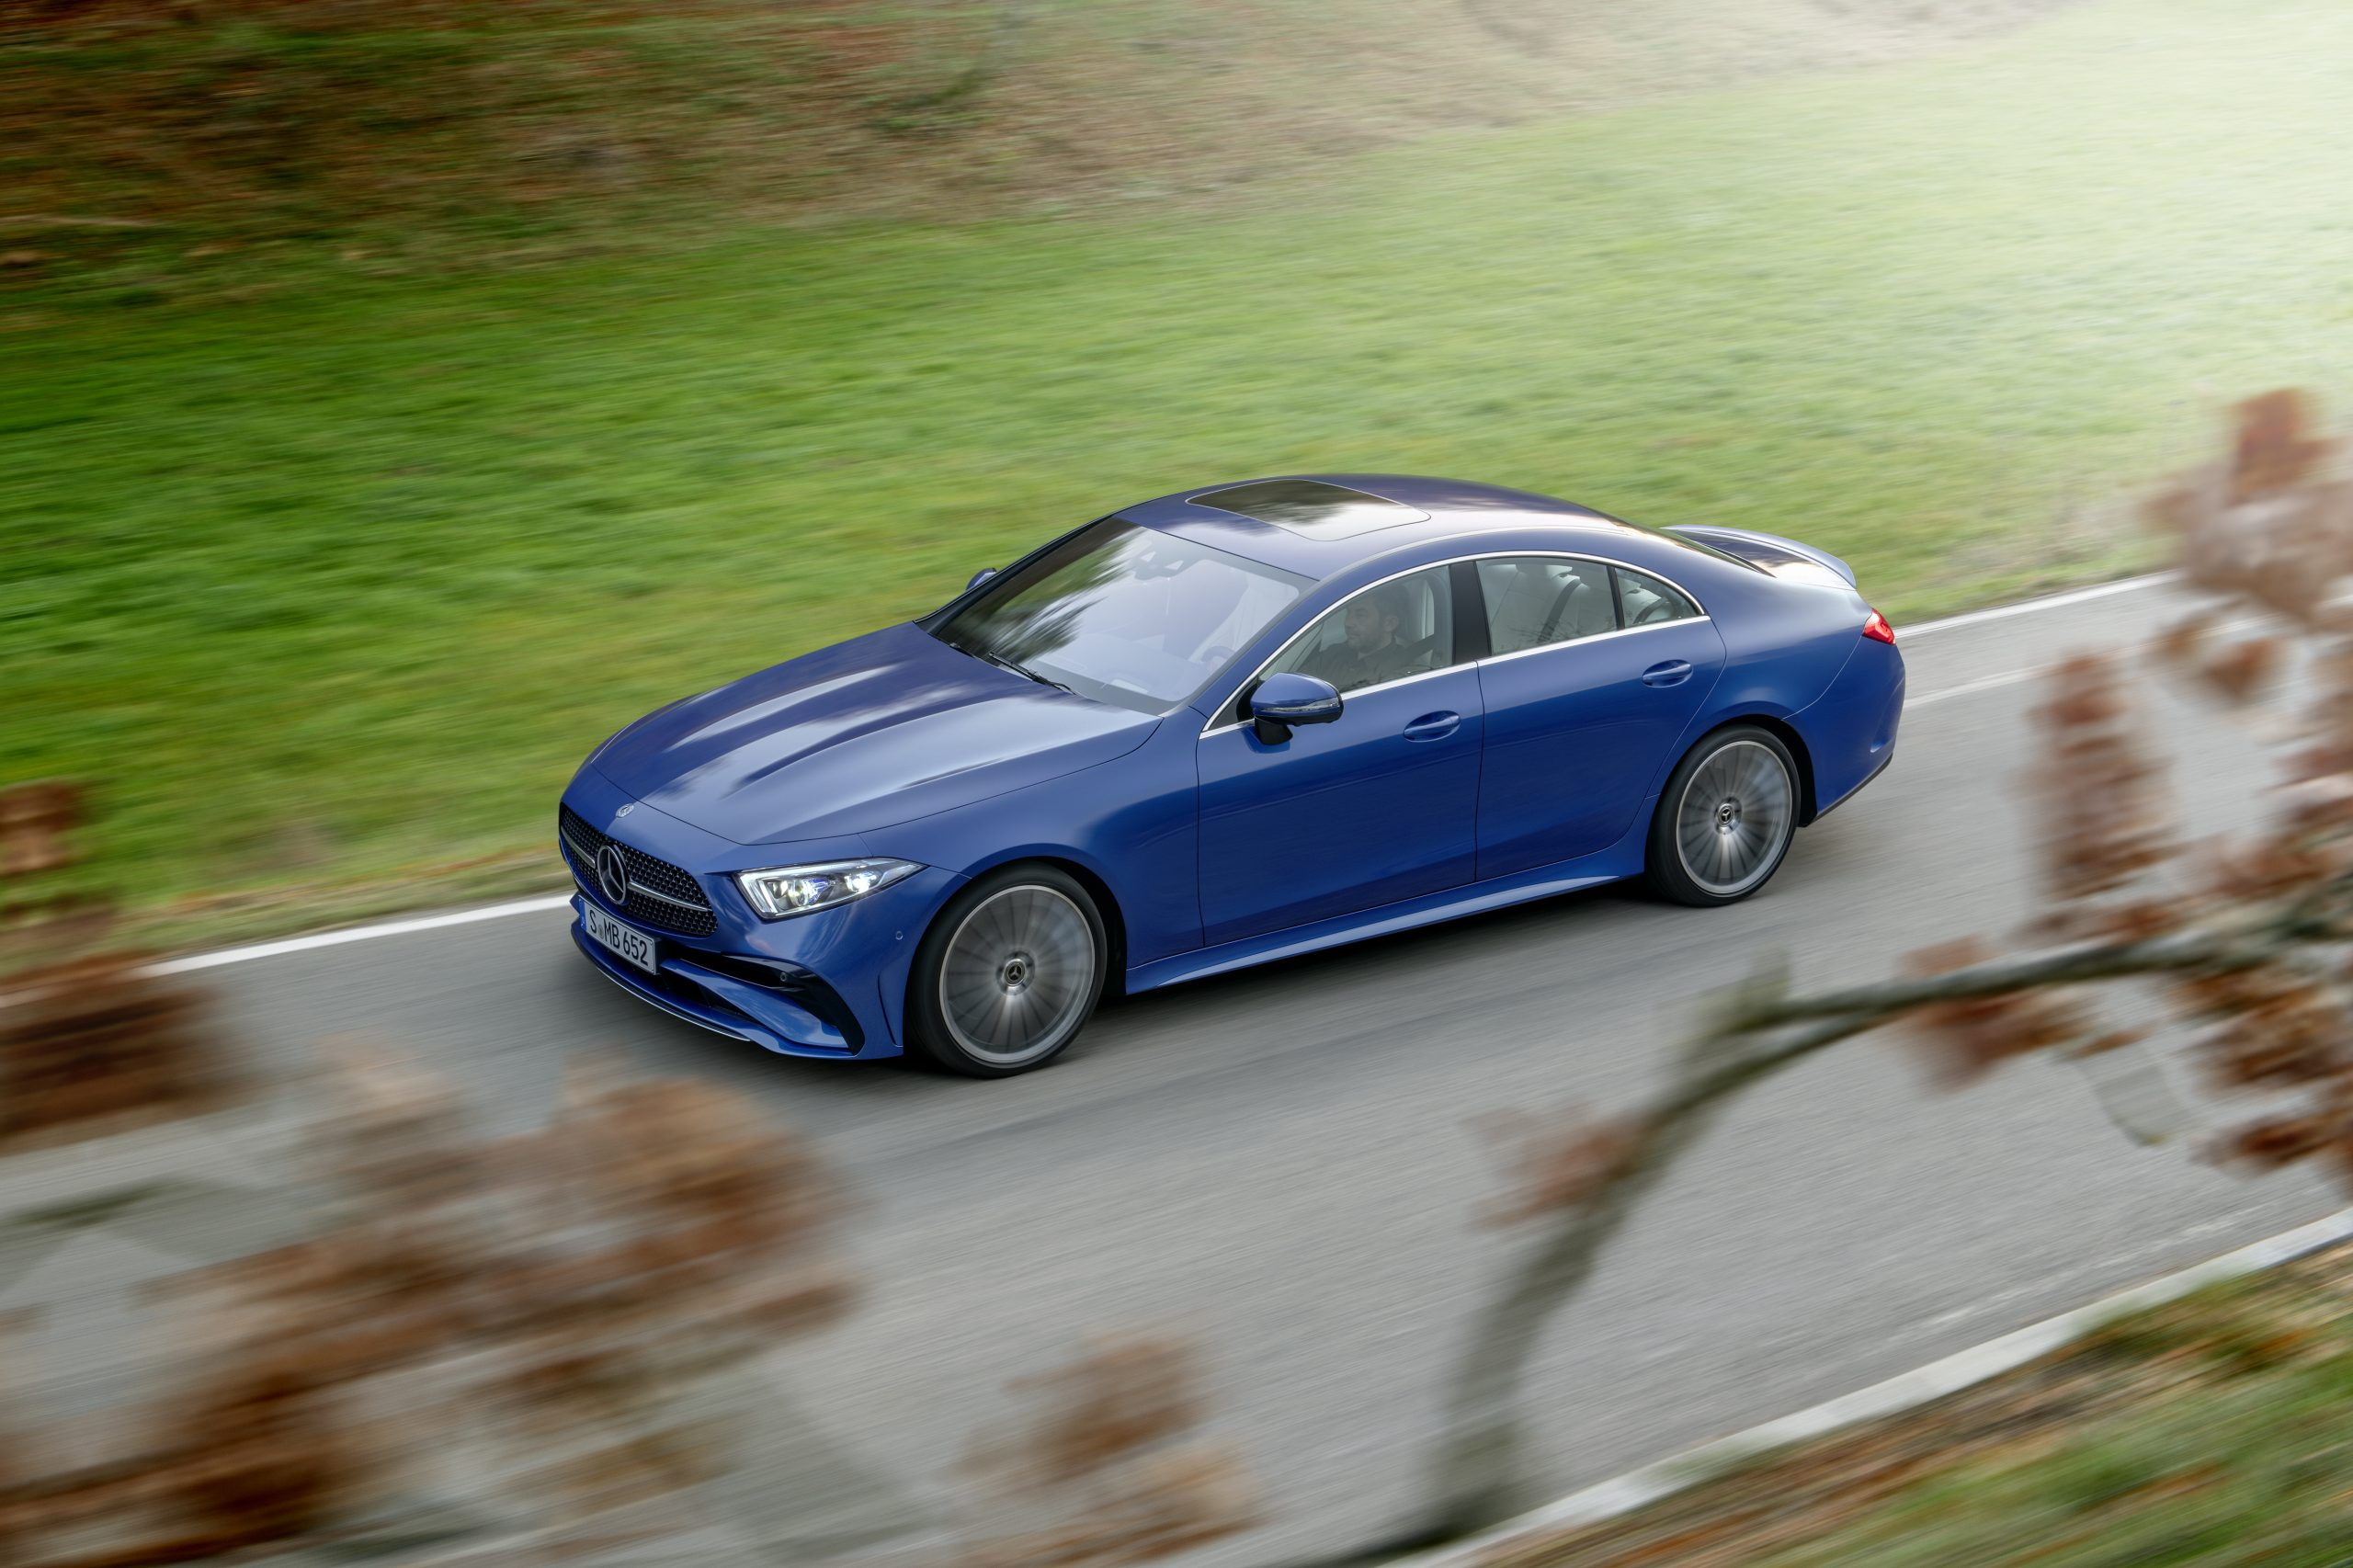 2021 Mercedes-Benz CLS 450 4Matic Coupé rolling